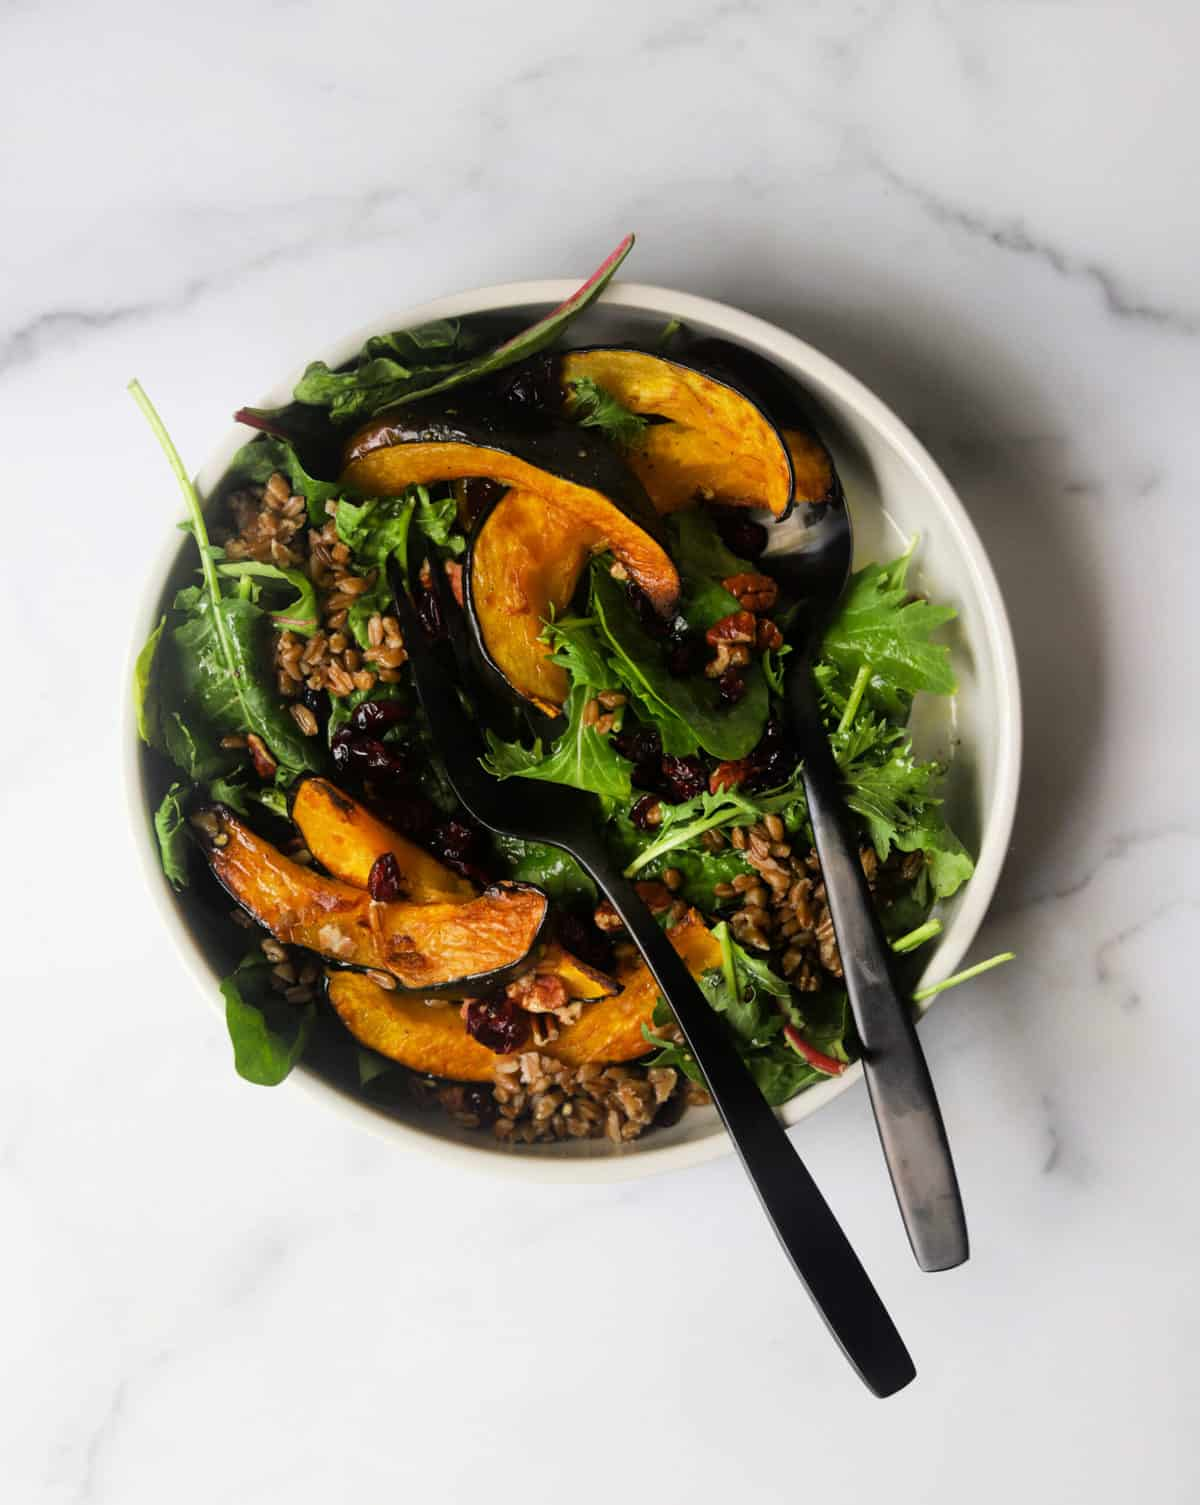 An overhead shot of a bowl of roasted acorn squash salad with two black serving utensils.